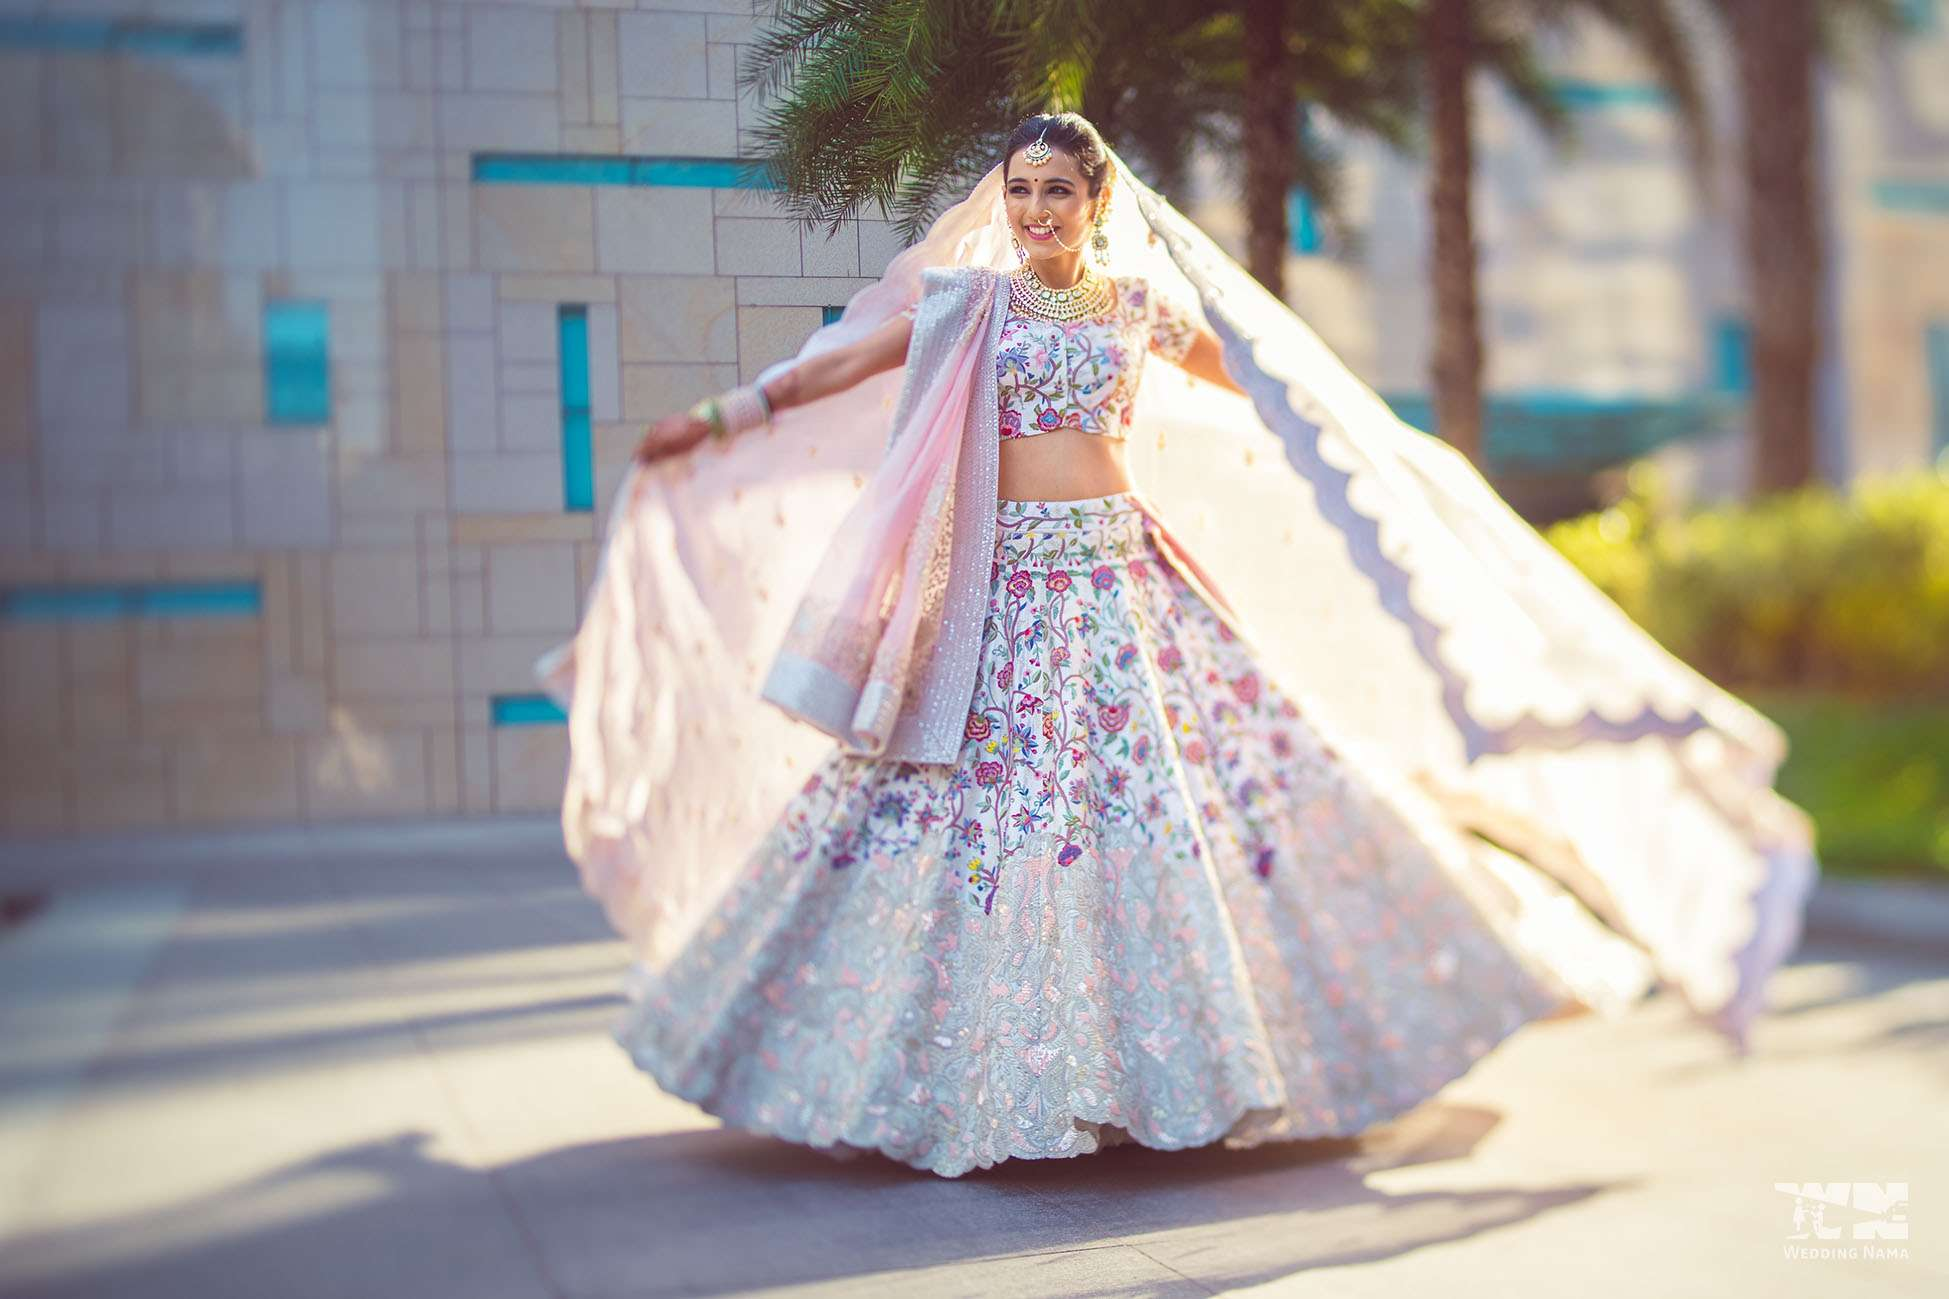 Masoom Minawala | Twirling Bride in Blush Pink Pristine White Anamika Khanna Lehenga with Silver Jaal Work and Floral Embroidery | 11 Unique Lehenga Hues That Will Make You Ditch The Usual Red | FunctionMania